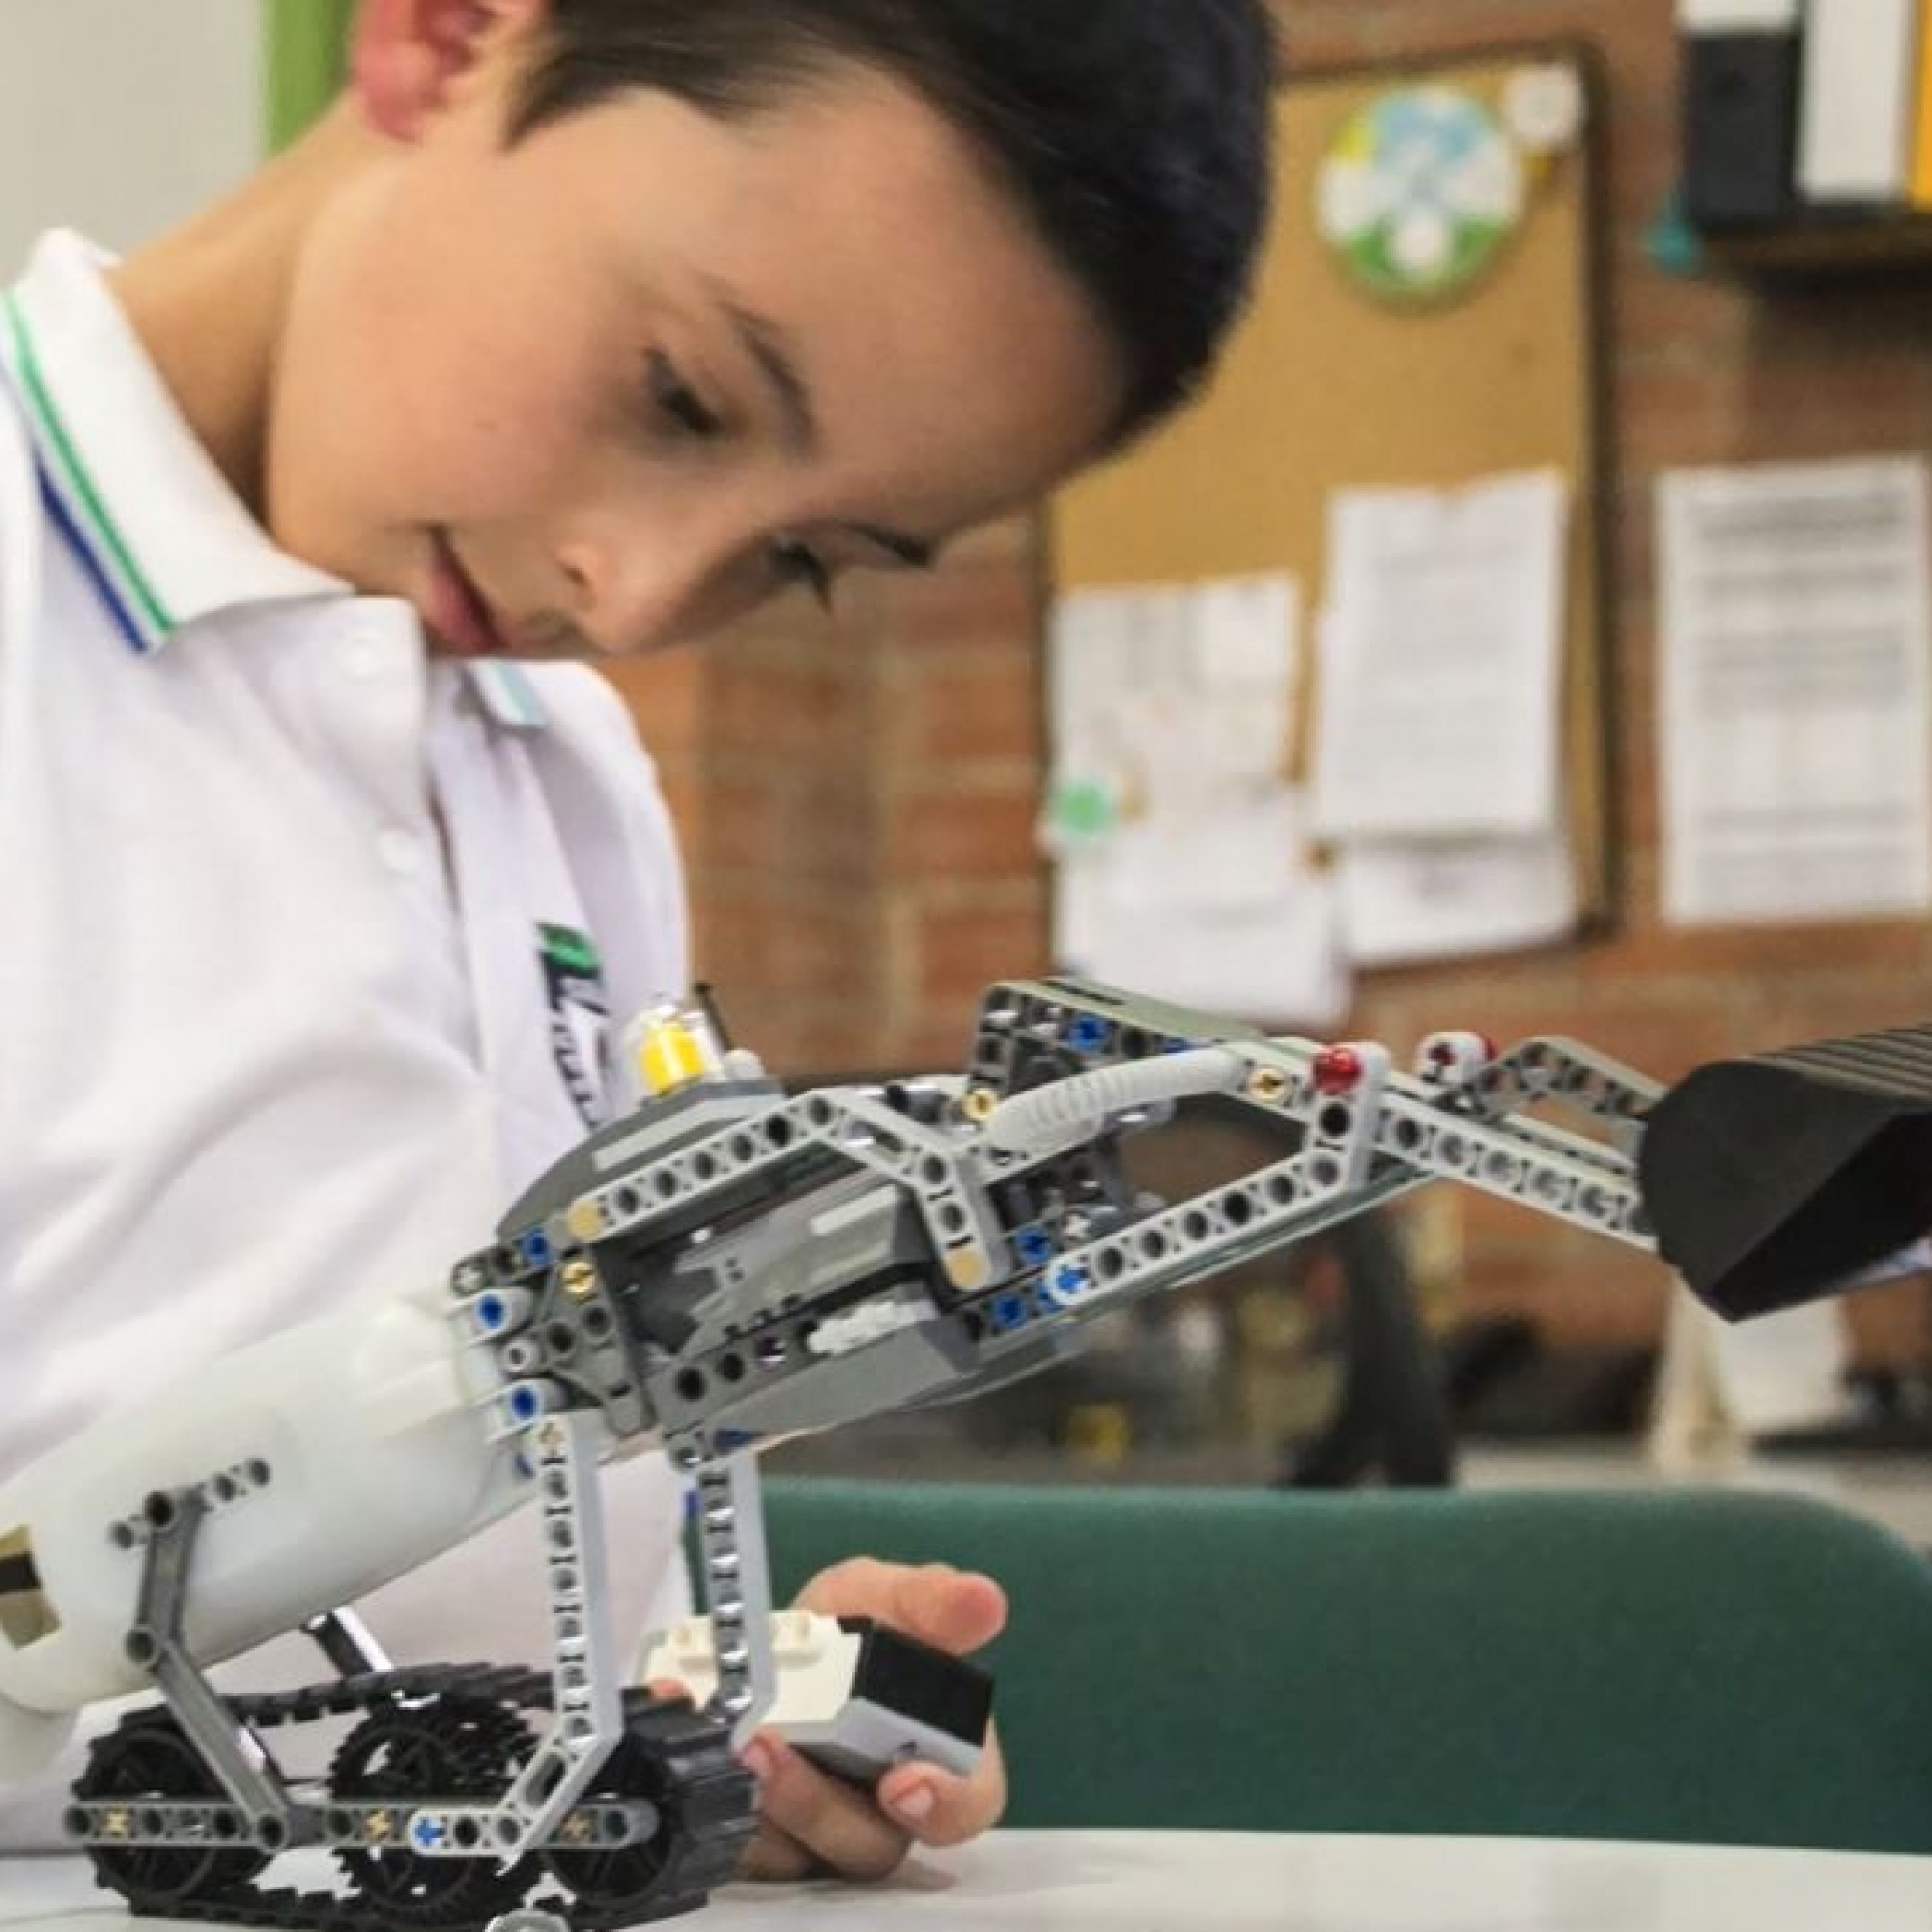 Disabled kids can customise their prosthetic arms – thanks to this Lego-based invention